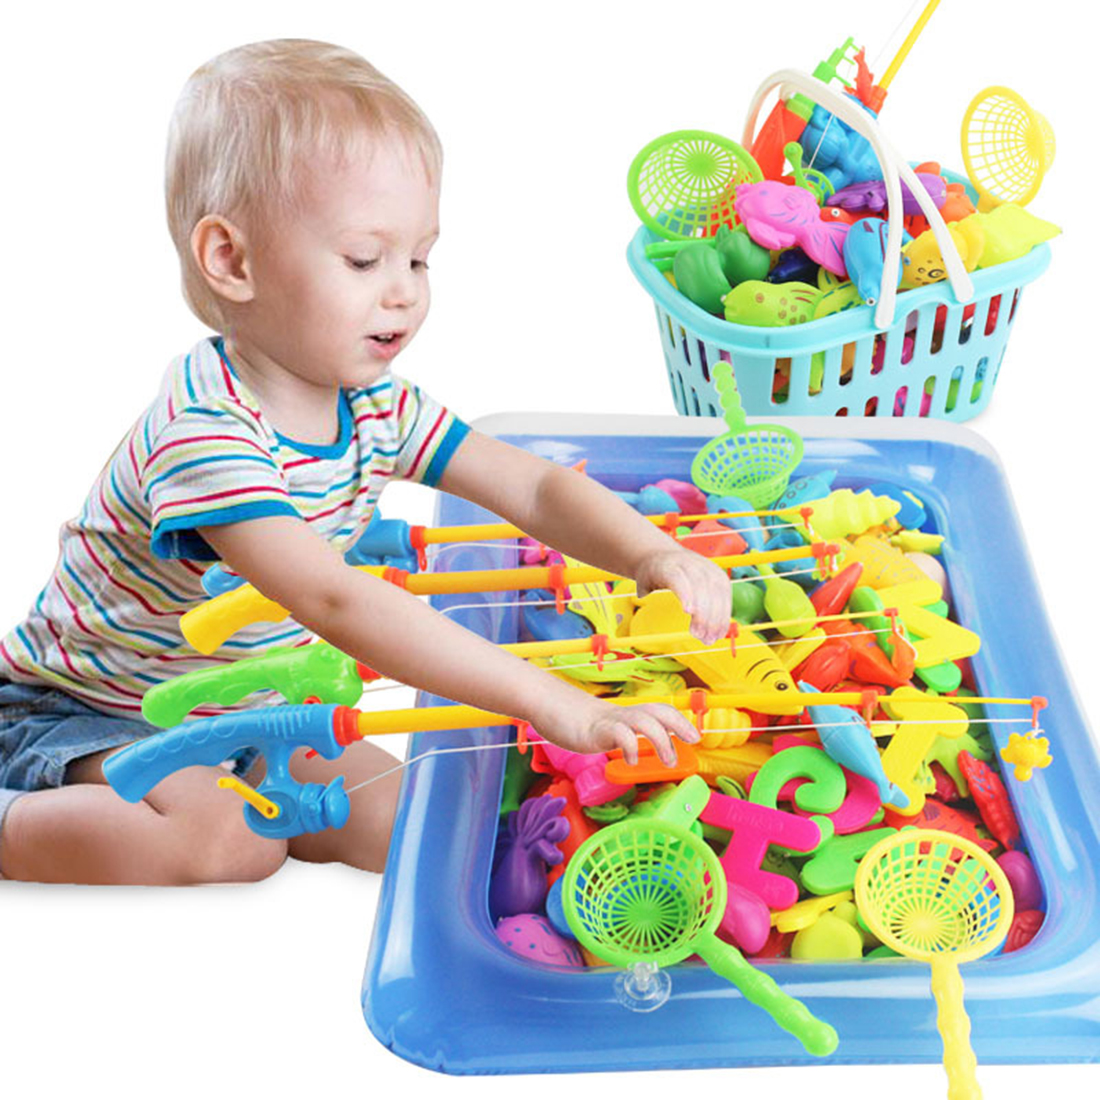 Hot 80Pcs Magnetic Fishing Pool Beach Toy Set Baby Educational Toys With Basket Beach Toy Play Sand Toys Gift For Kids Children